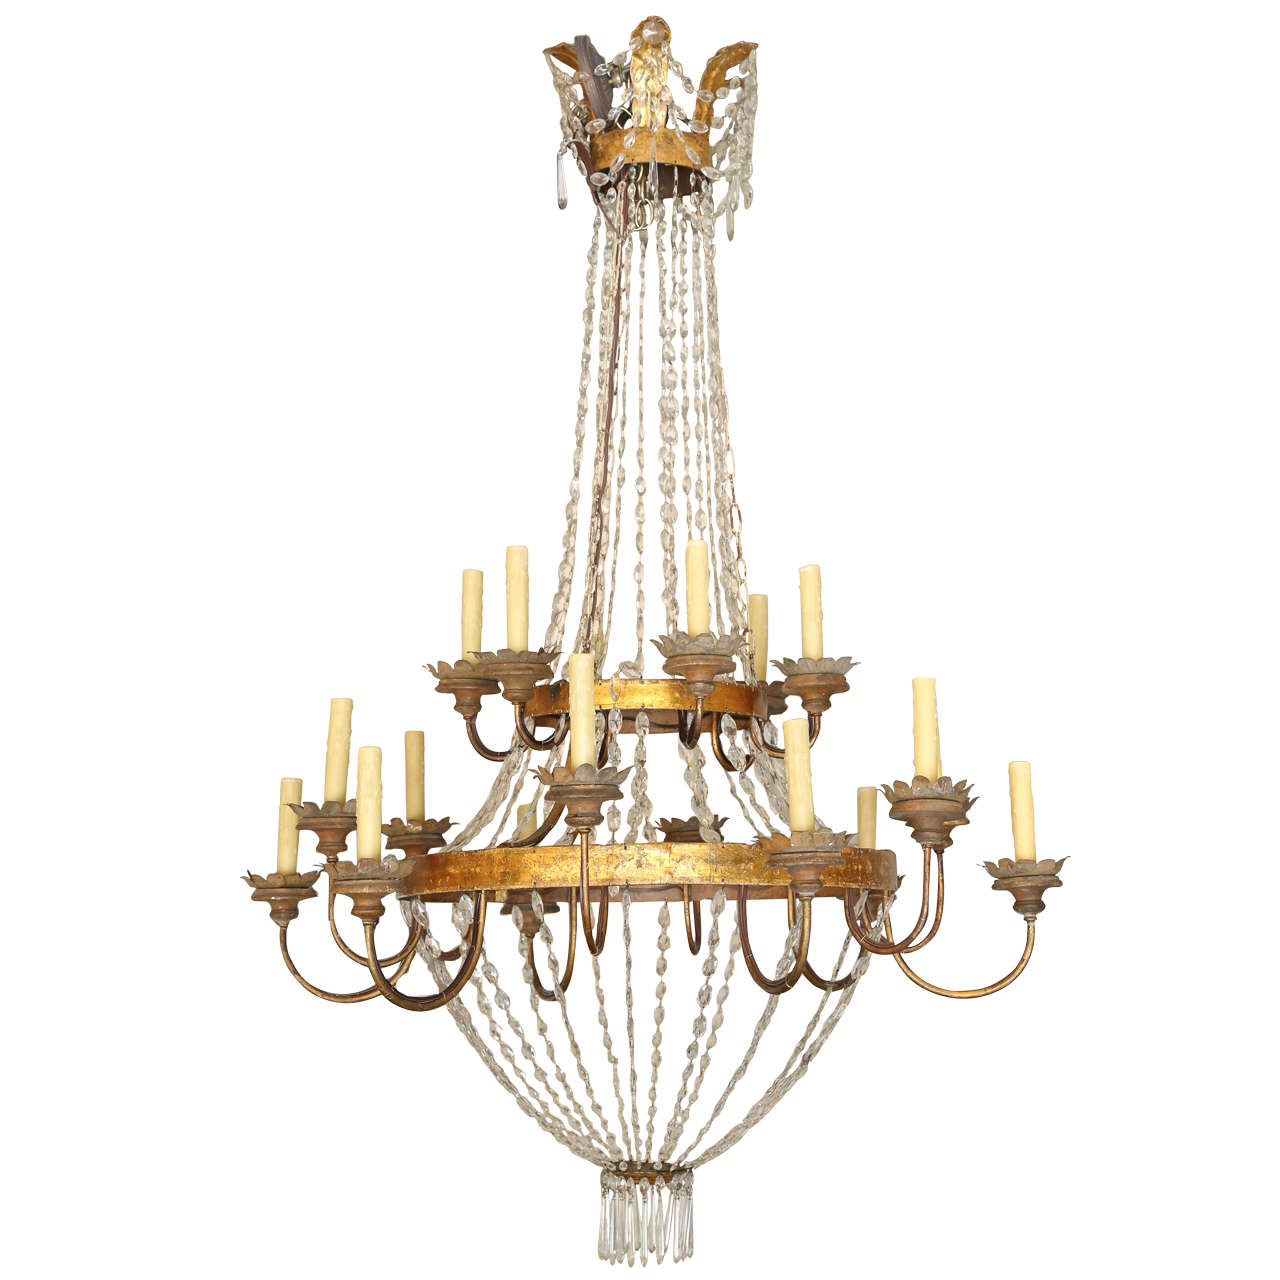 Large Early 19th Century Chandelier from Lucca 1